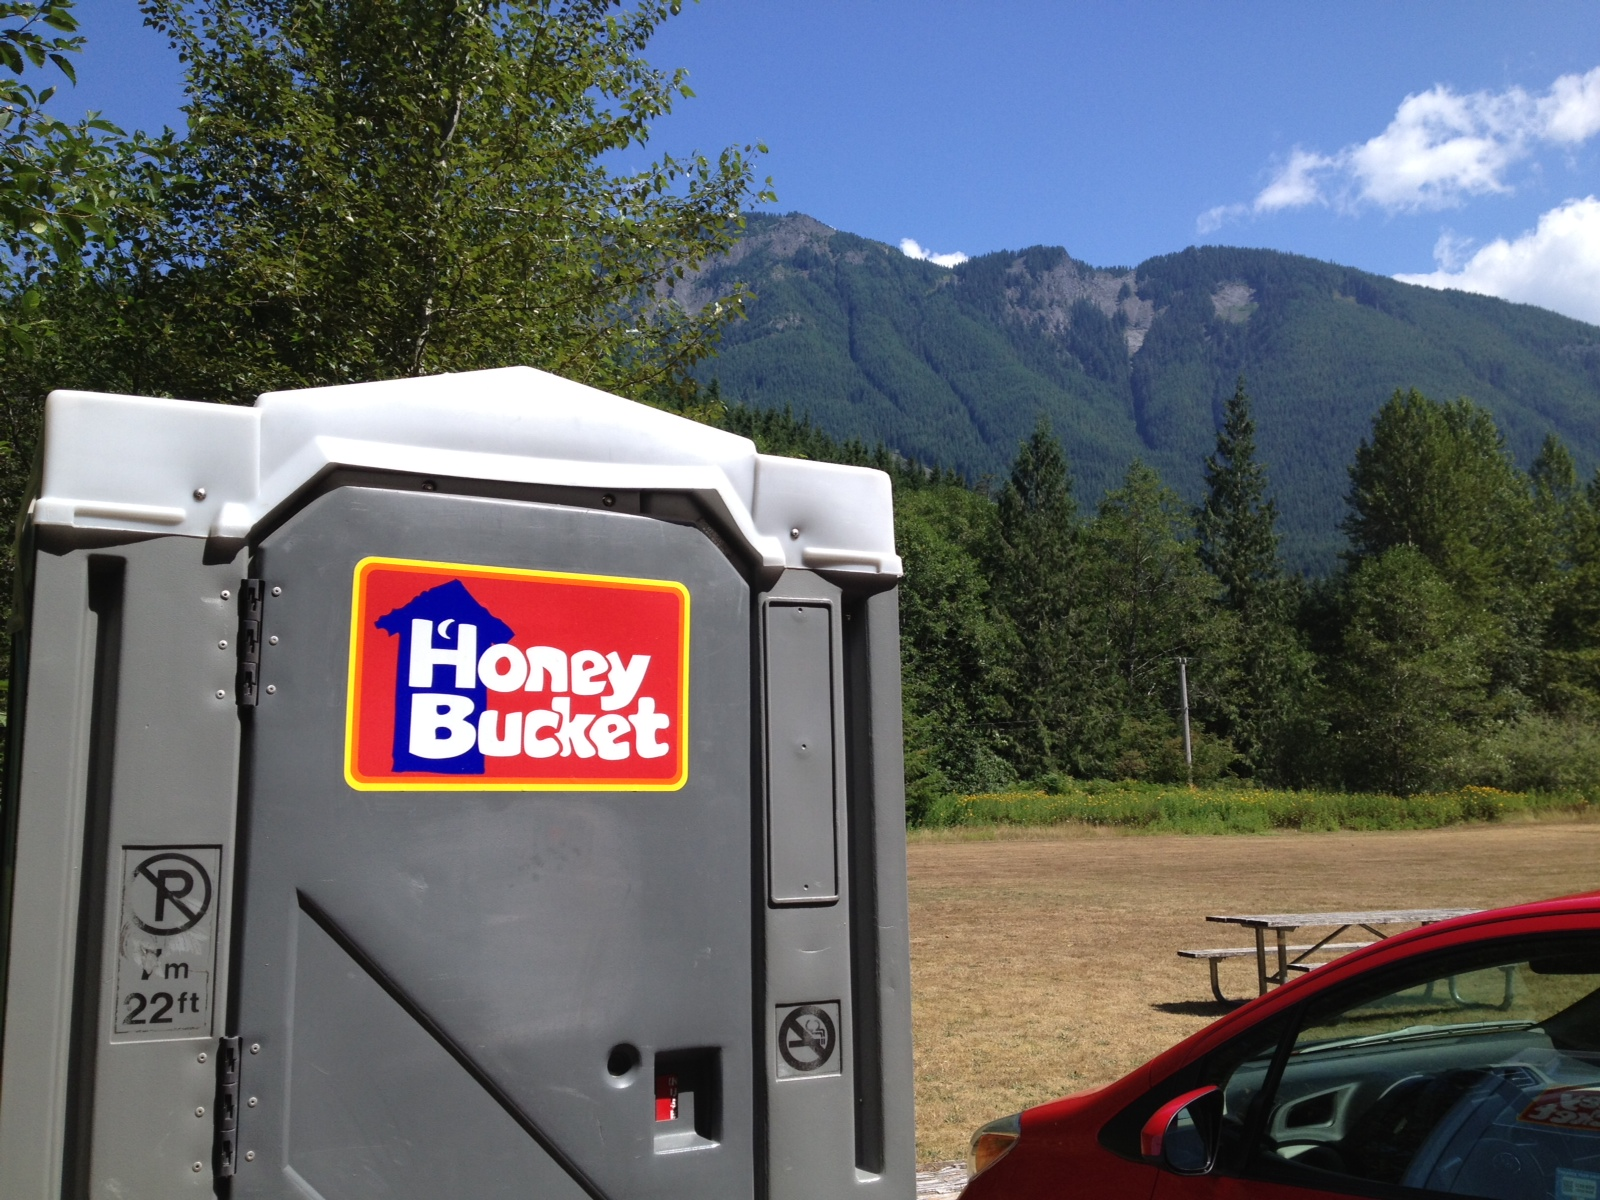 In Washington, a porta-potty is called a Honey Bucket. Makes it a little sweeter?